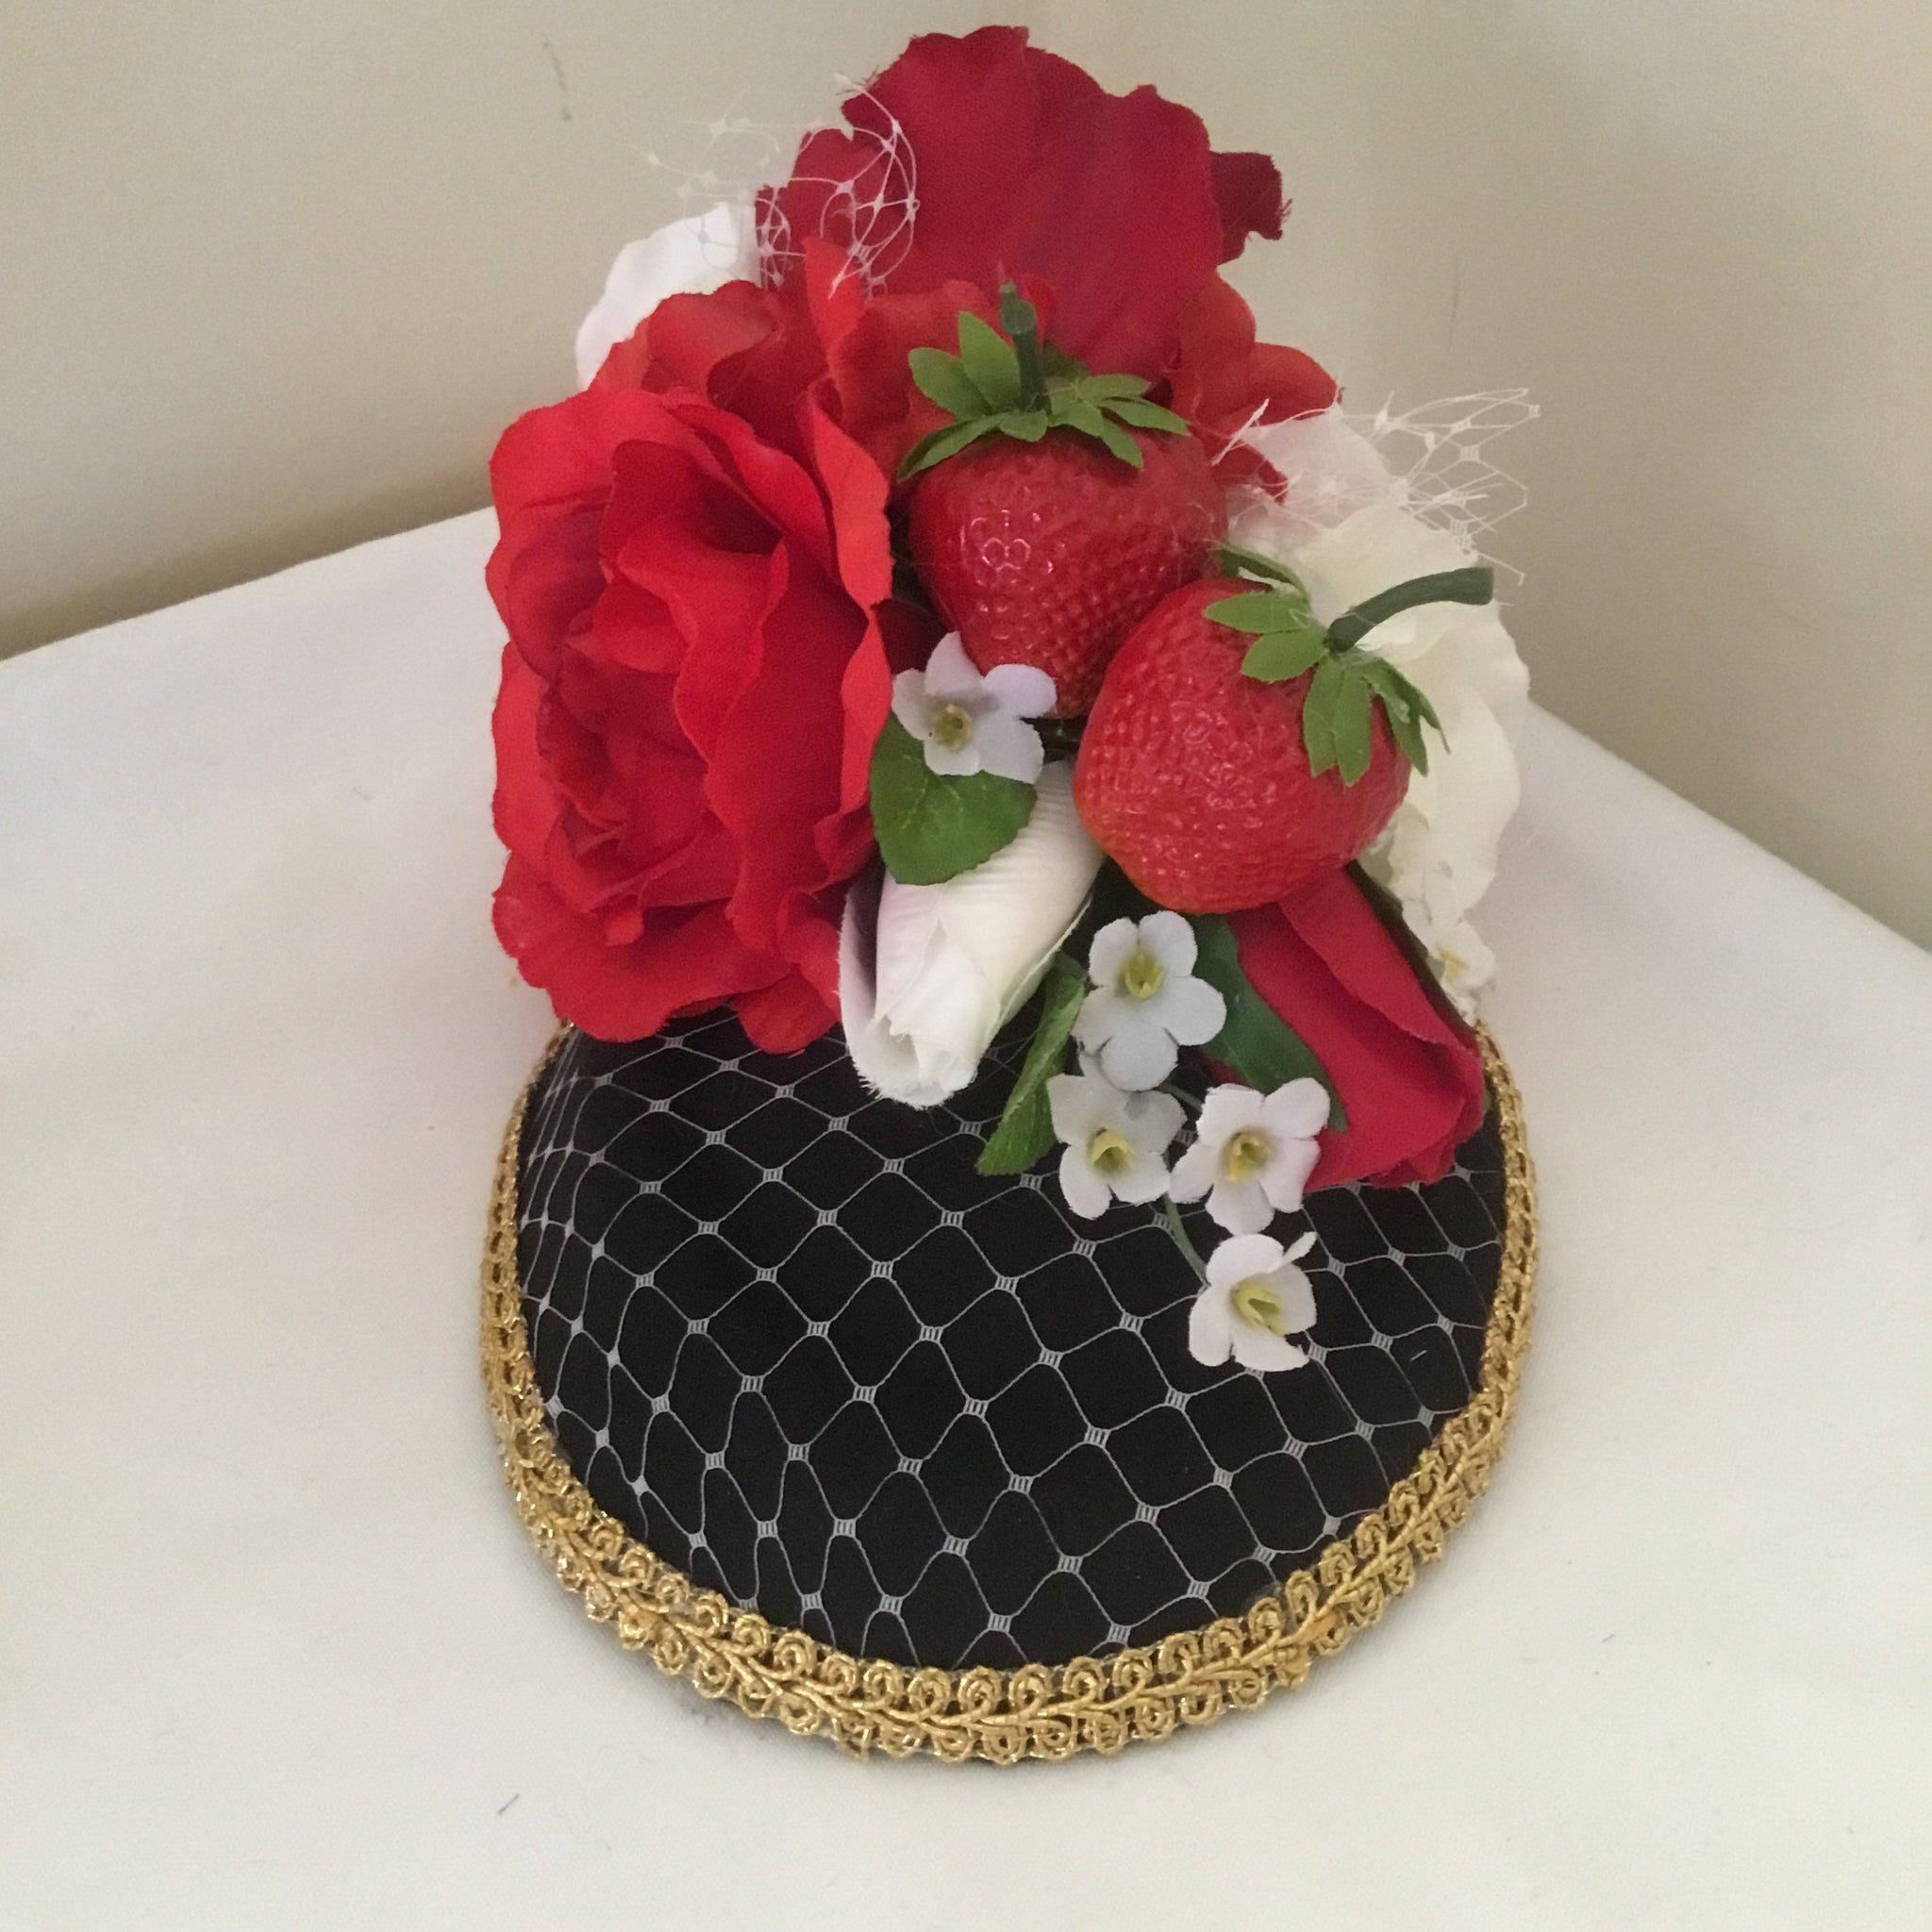 STRAWBERRY FIELDS .. bespoke strawberry fascinator/ pillbox hat ..